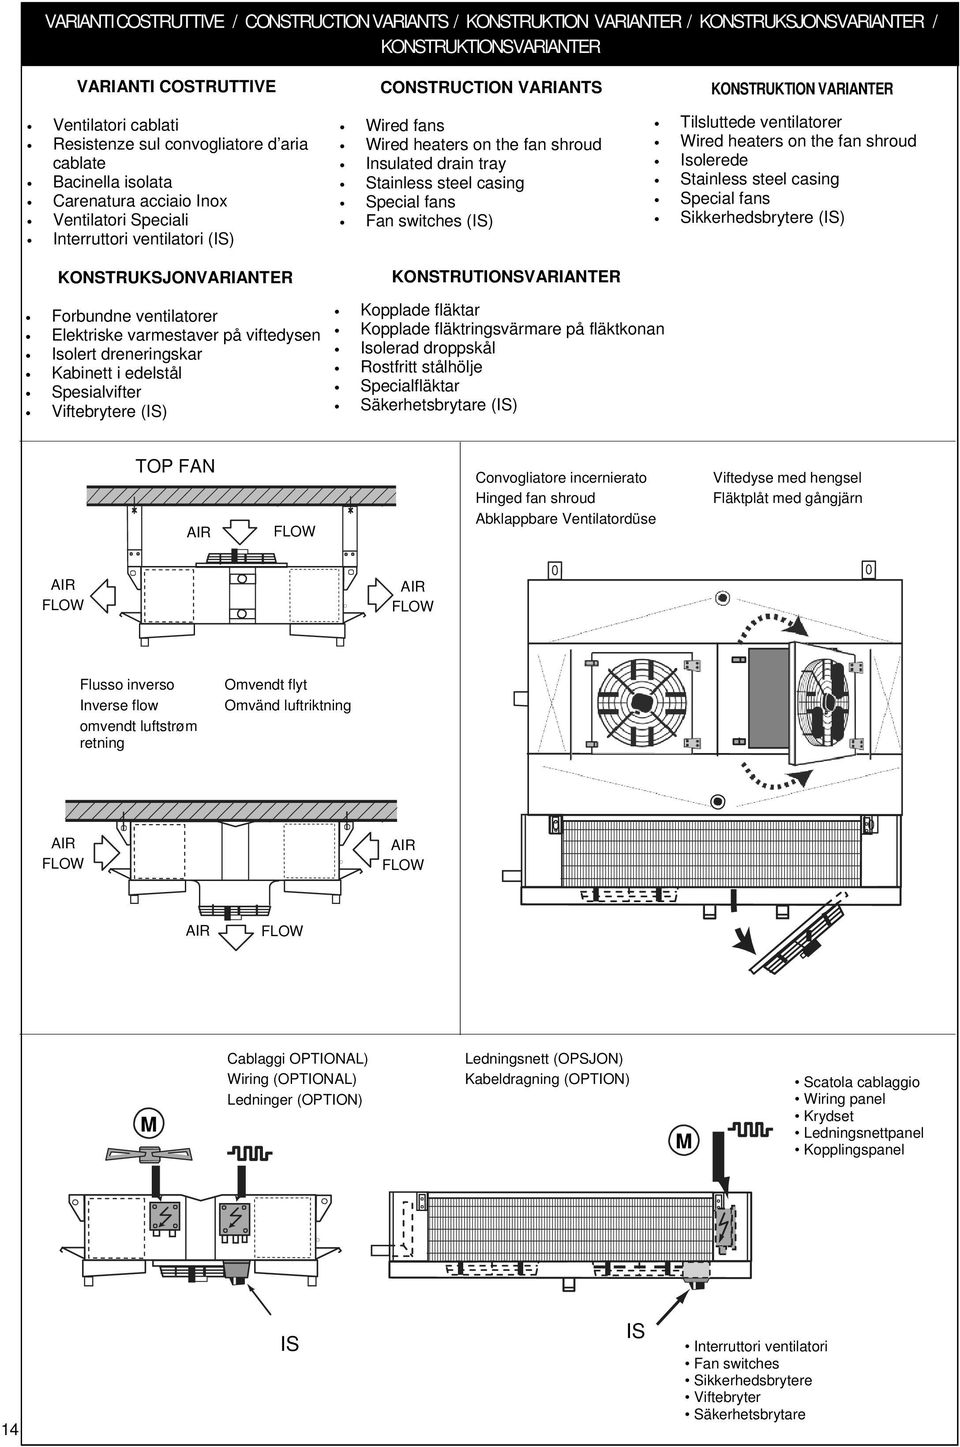 drain tray Stainless steel casing Special fans Fan switches (IS) KONSTRUTIONSVARIANTER KONSTRUKTION VARIANTER Tilsluttede ventilatorer Wired heaters on the fan shroud Isolerede Stainless steel casing